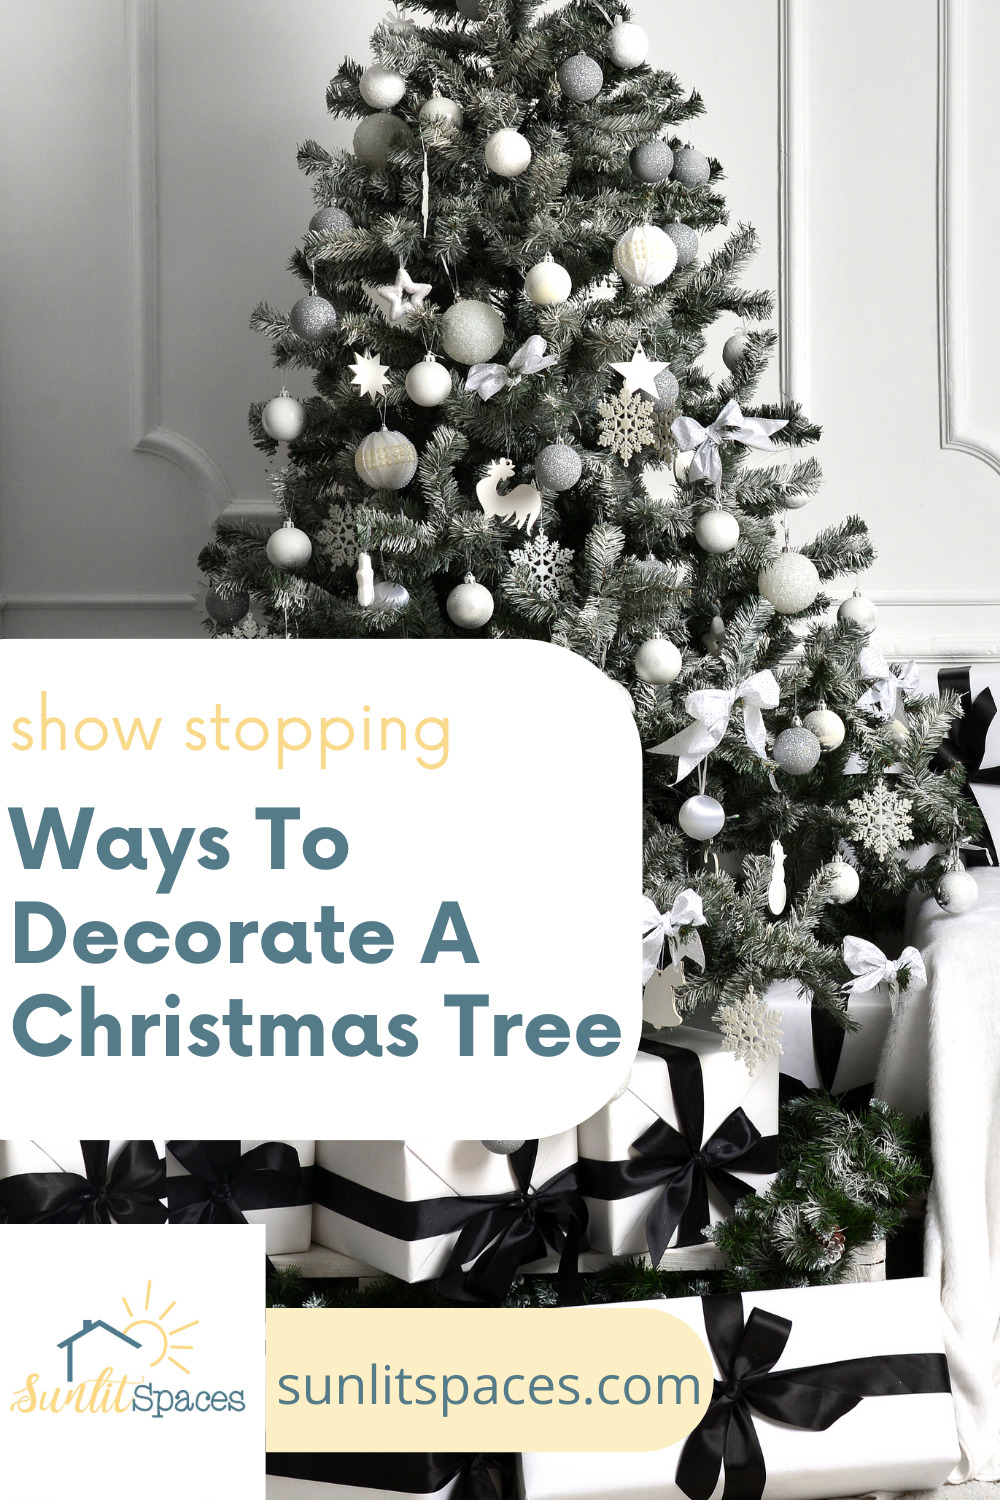 10 Insanely beautiful ways to decorate a Christmas tree. Are you tired of the same old, same old? Don't be afraid to change it up with one of these 10 ways to decorate your tree this year. #sunlitspacesblog #waystodecorateachristmastree #christmastree #christmasdecorations